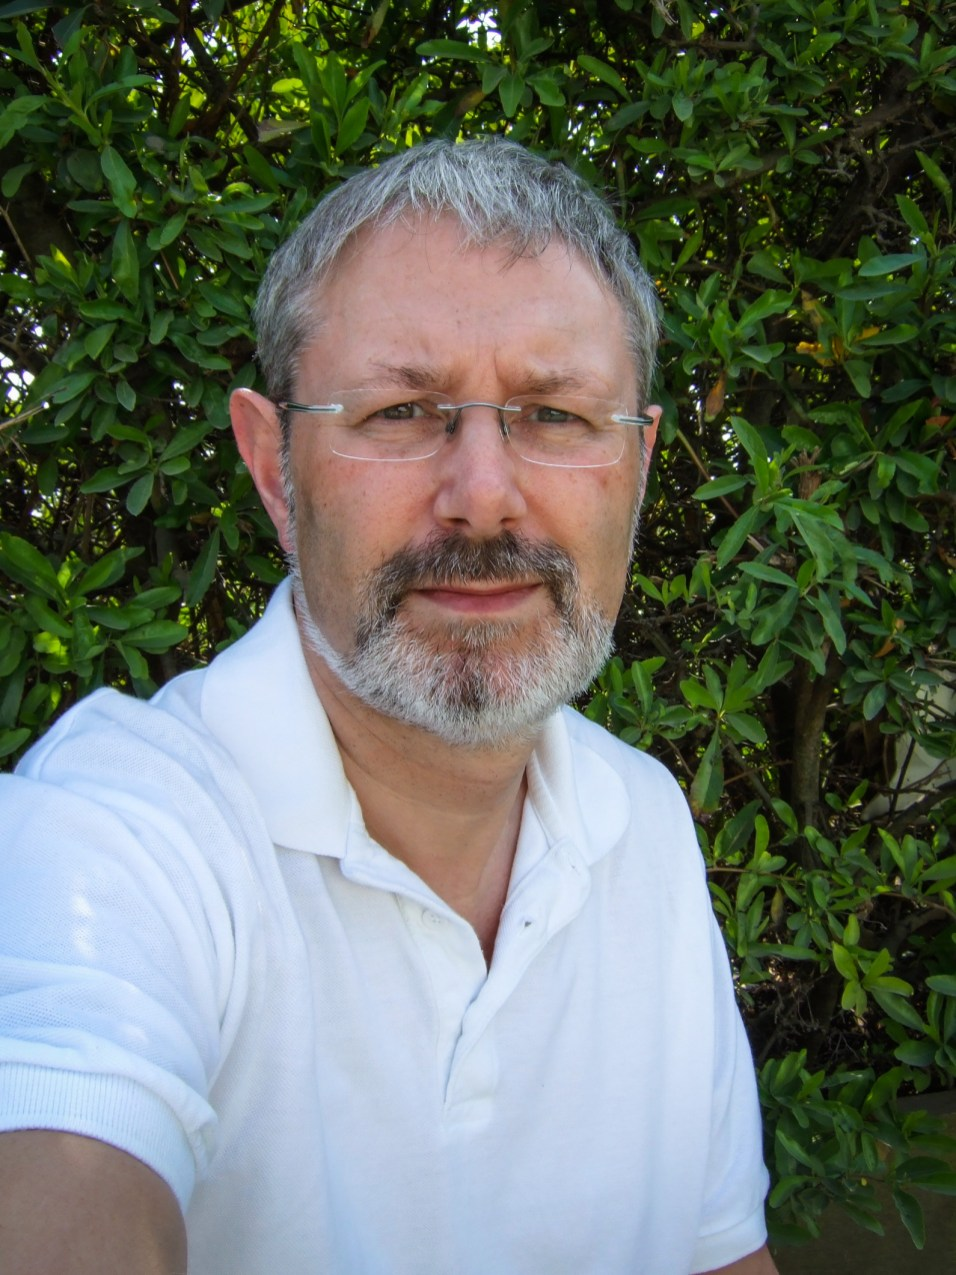 Gary + hedge. Copyright © 2007 Gary Allman, all rights reserved.